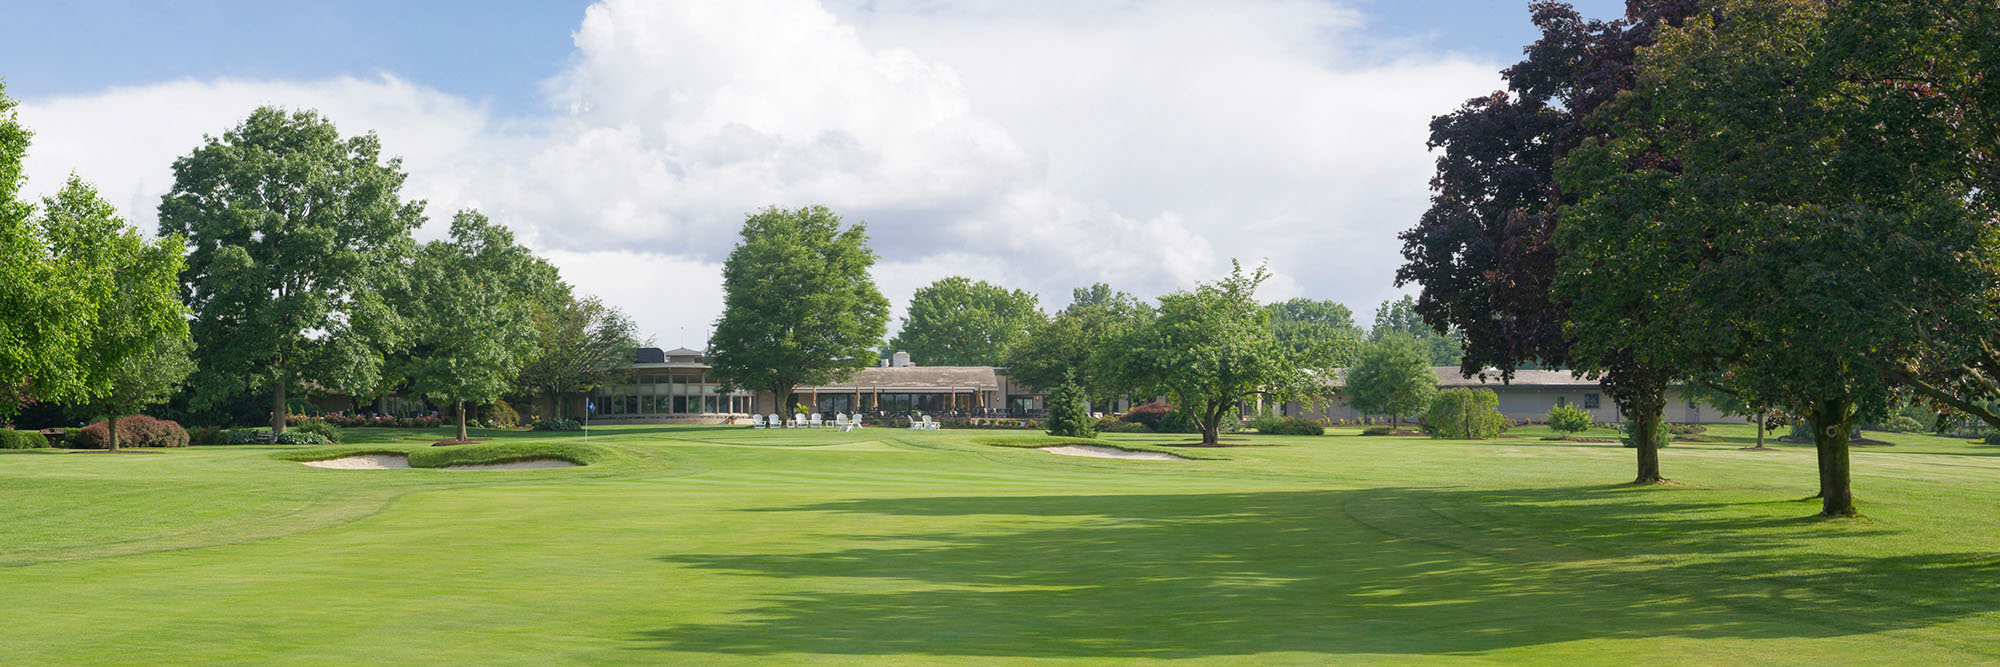 Golf Course Image - Out Door Country Club No. 18